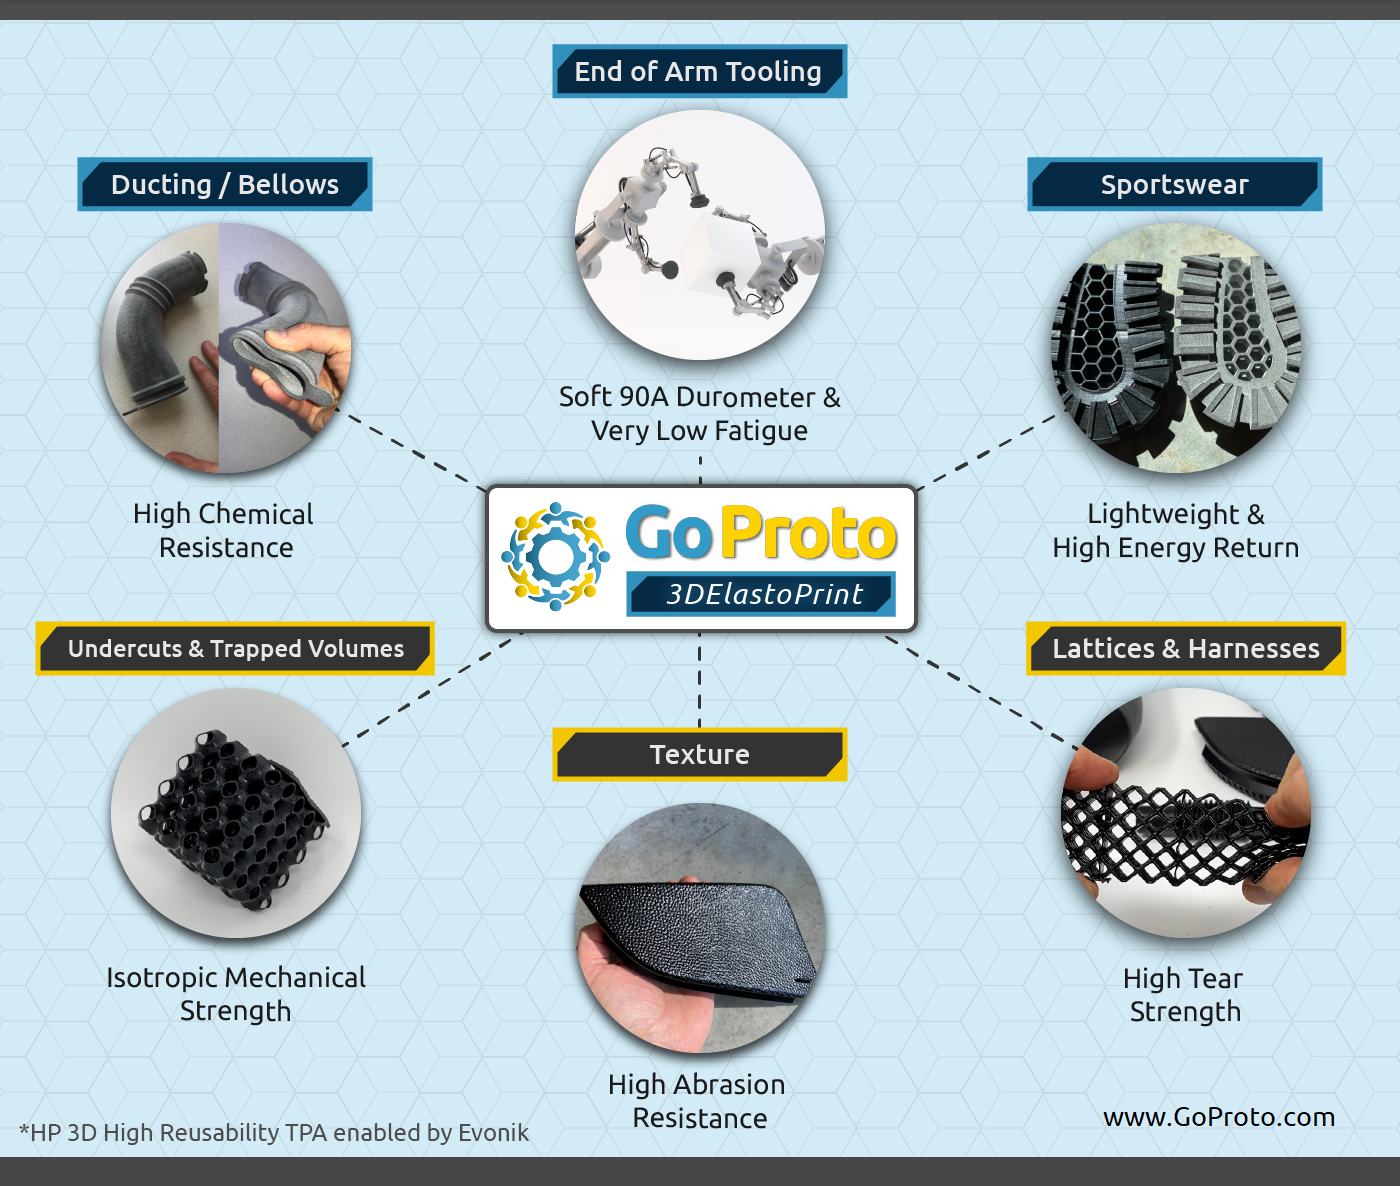 GoProto has said the elastomer opens a range of new printing applications to its clients, including sports equipment, wearables, footwear, protective gear and eyewear. Photo via GoProto.